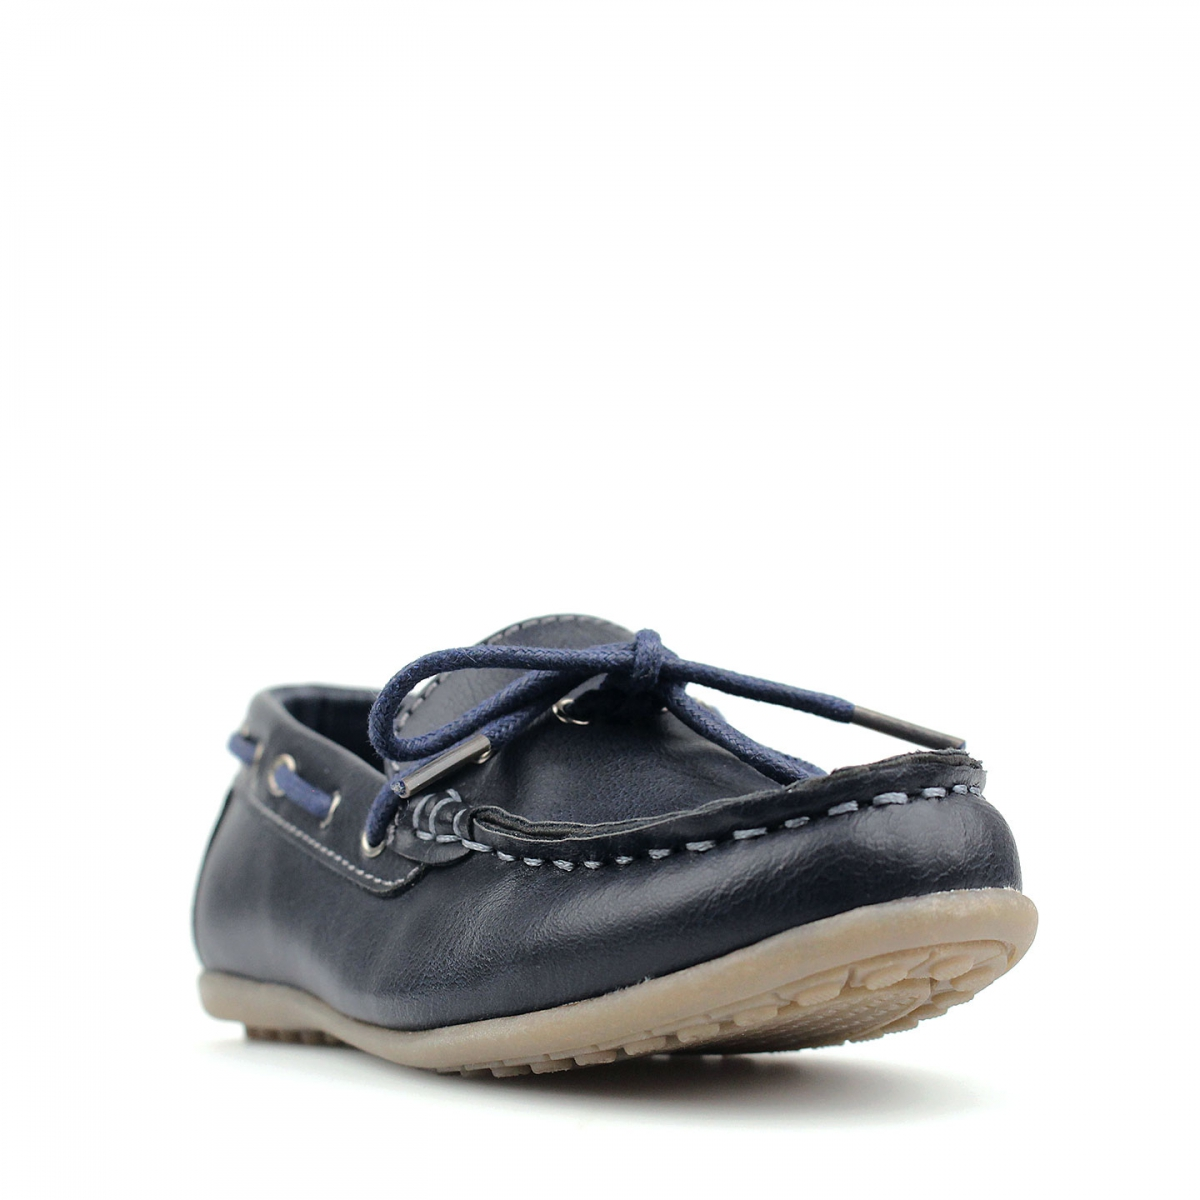 starboard j shoes baby shoes children shoes